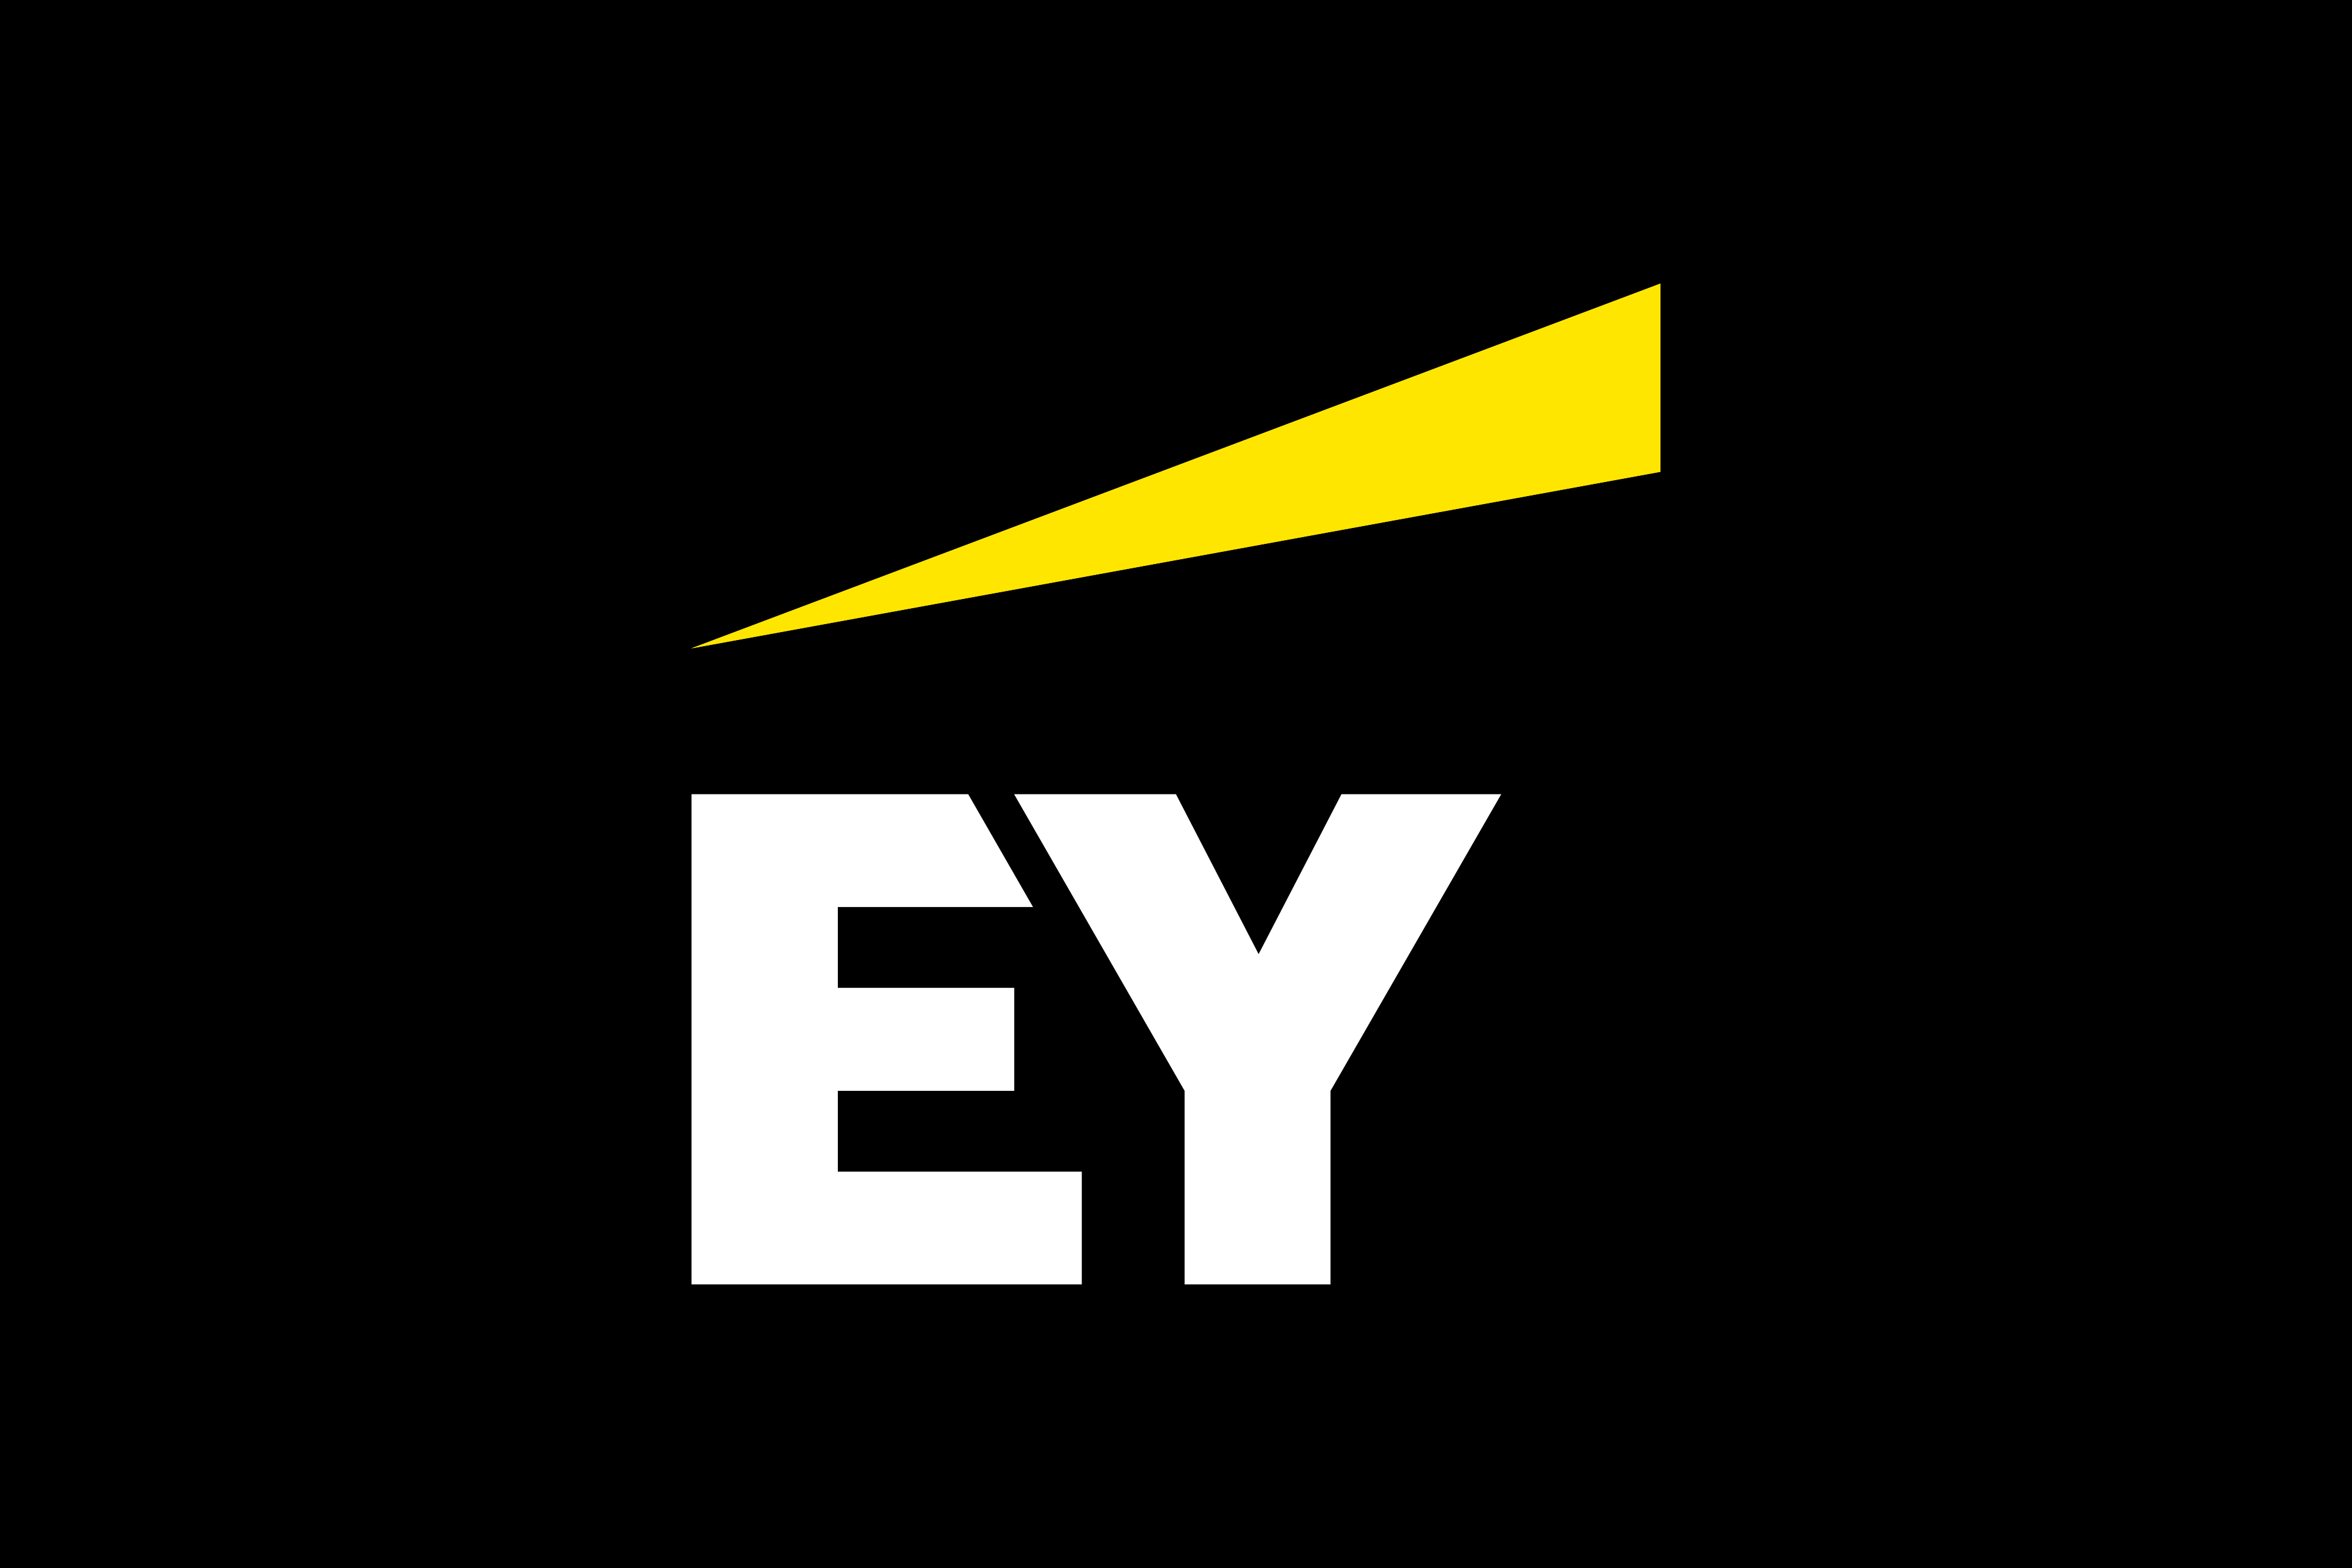 EY Announces Entrepreneur Of The Year® 2020 New York Award Finalists